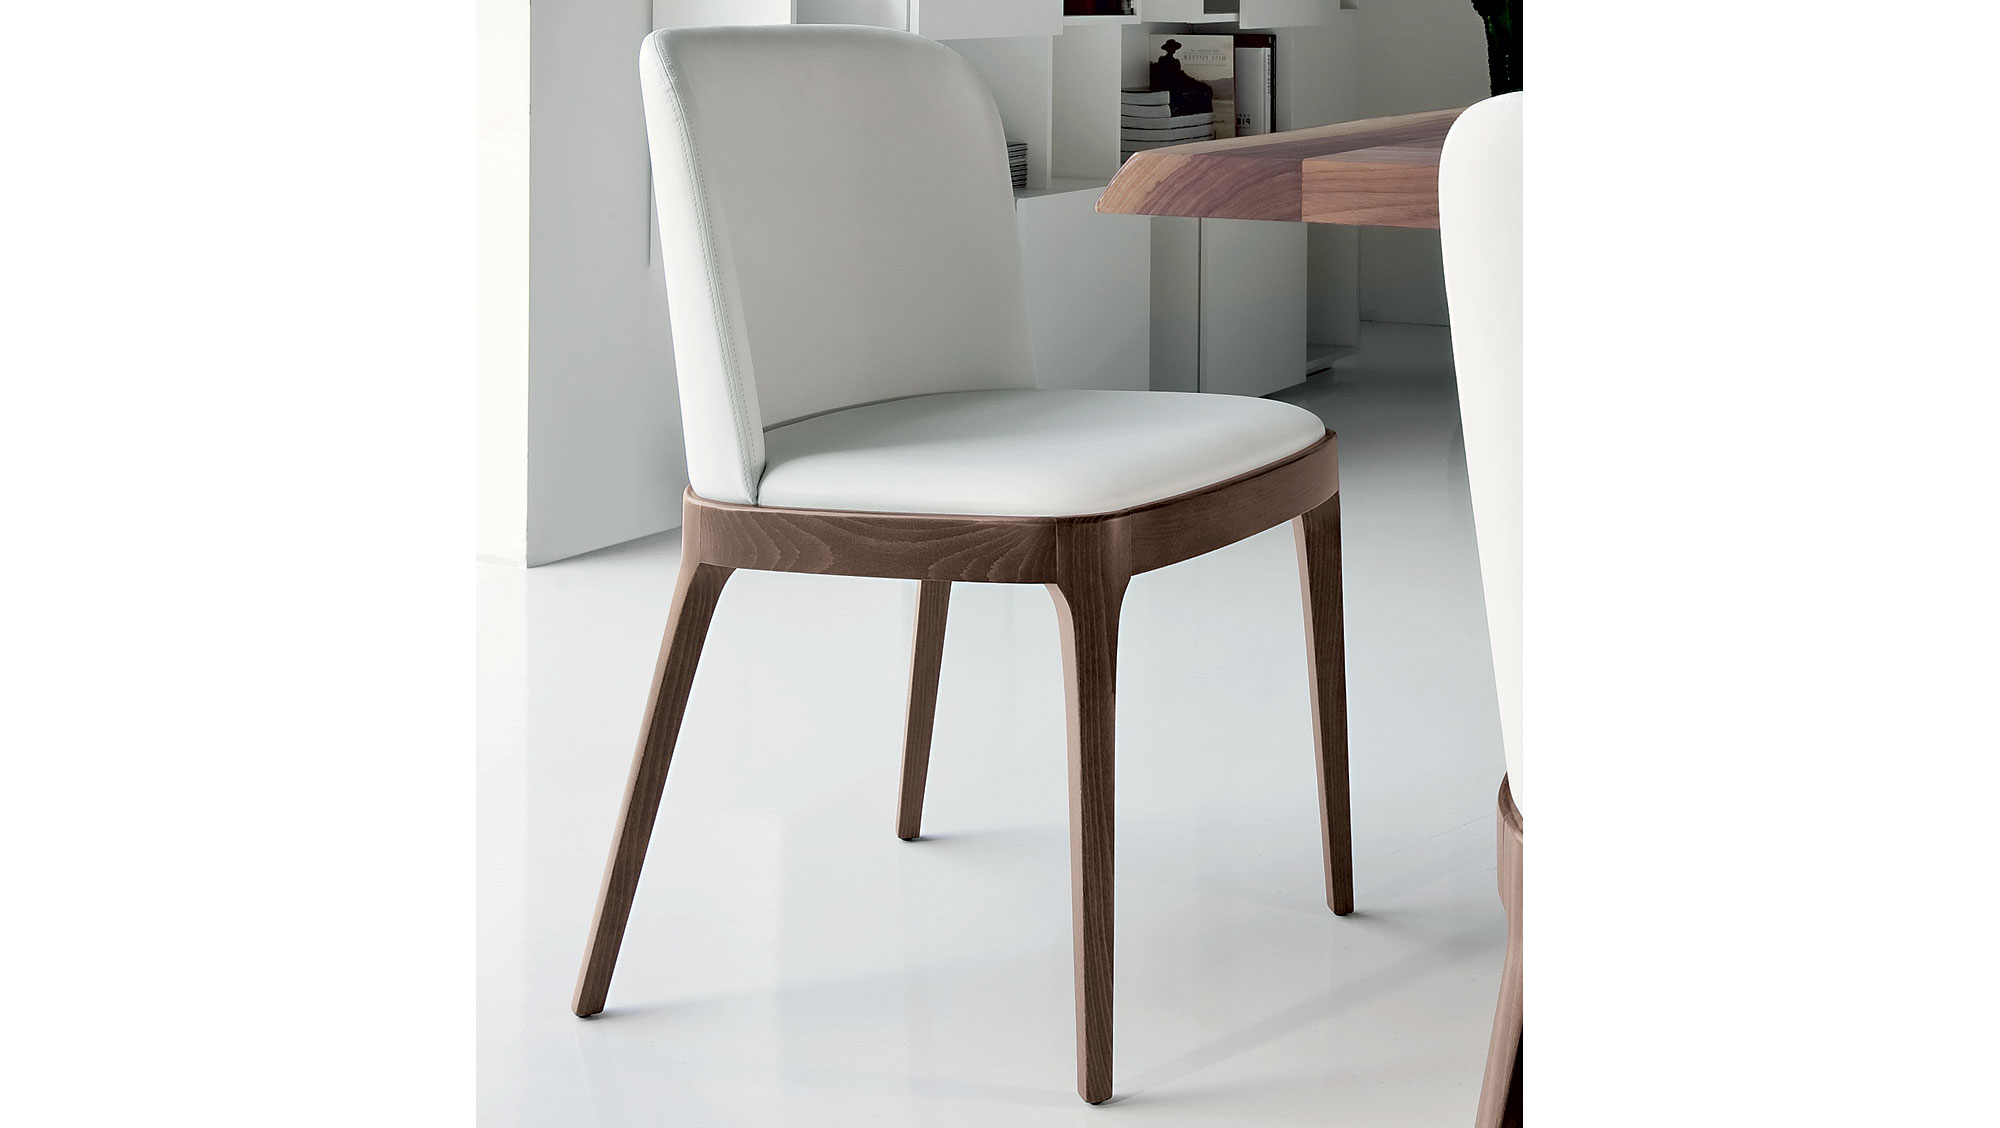 Silla moderna magda cattelan en for Sillas muebles